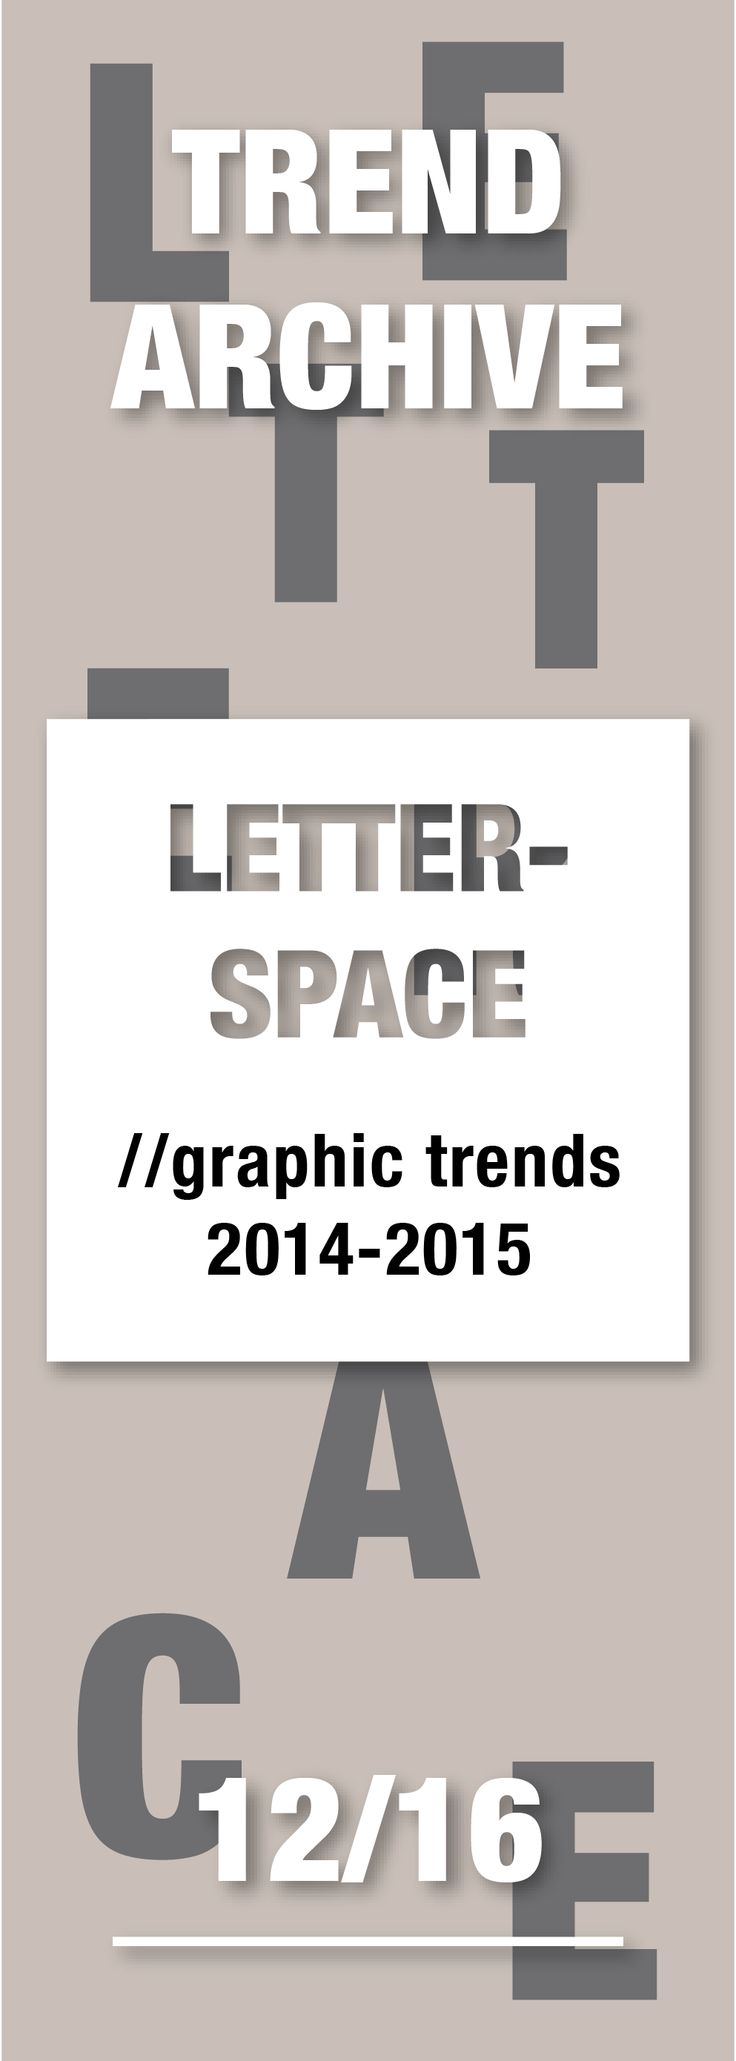 Poster design trends 2015 -  Type Typography Letterspace Graphicdesigntrends Graphicdesign Design Trends Trendarchive